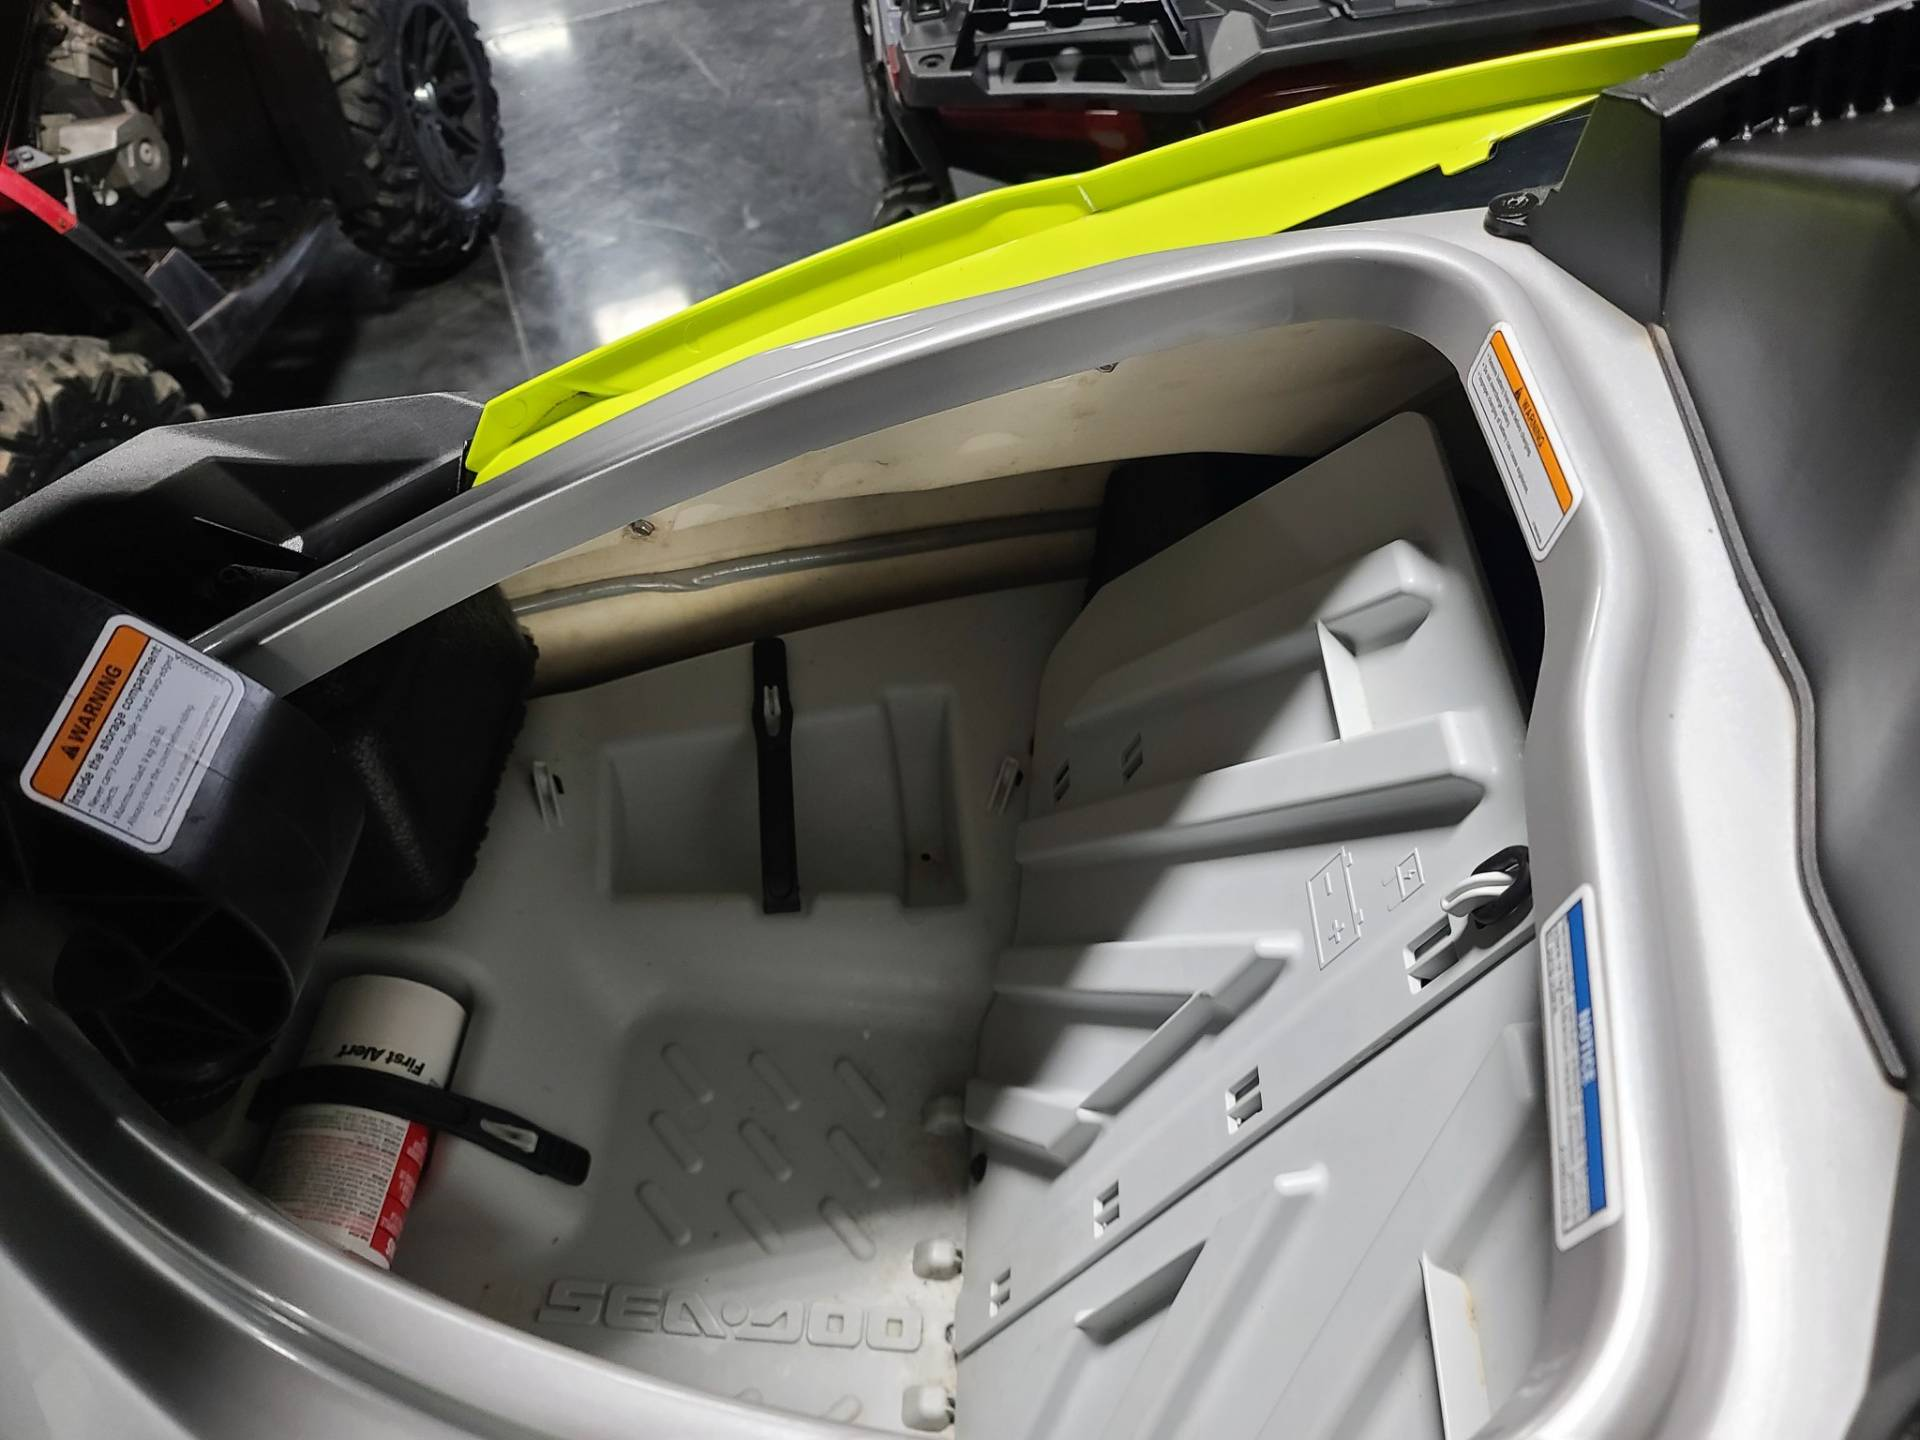 2019 Sea-Doo GTR-X 230 in Durant, Oklahoma - Photo 6